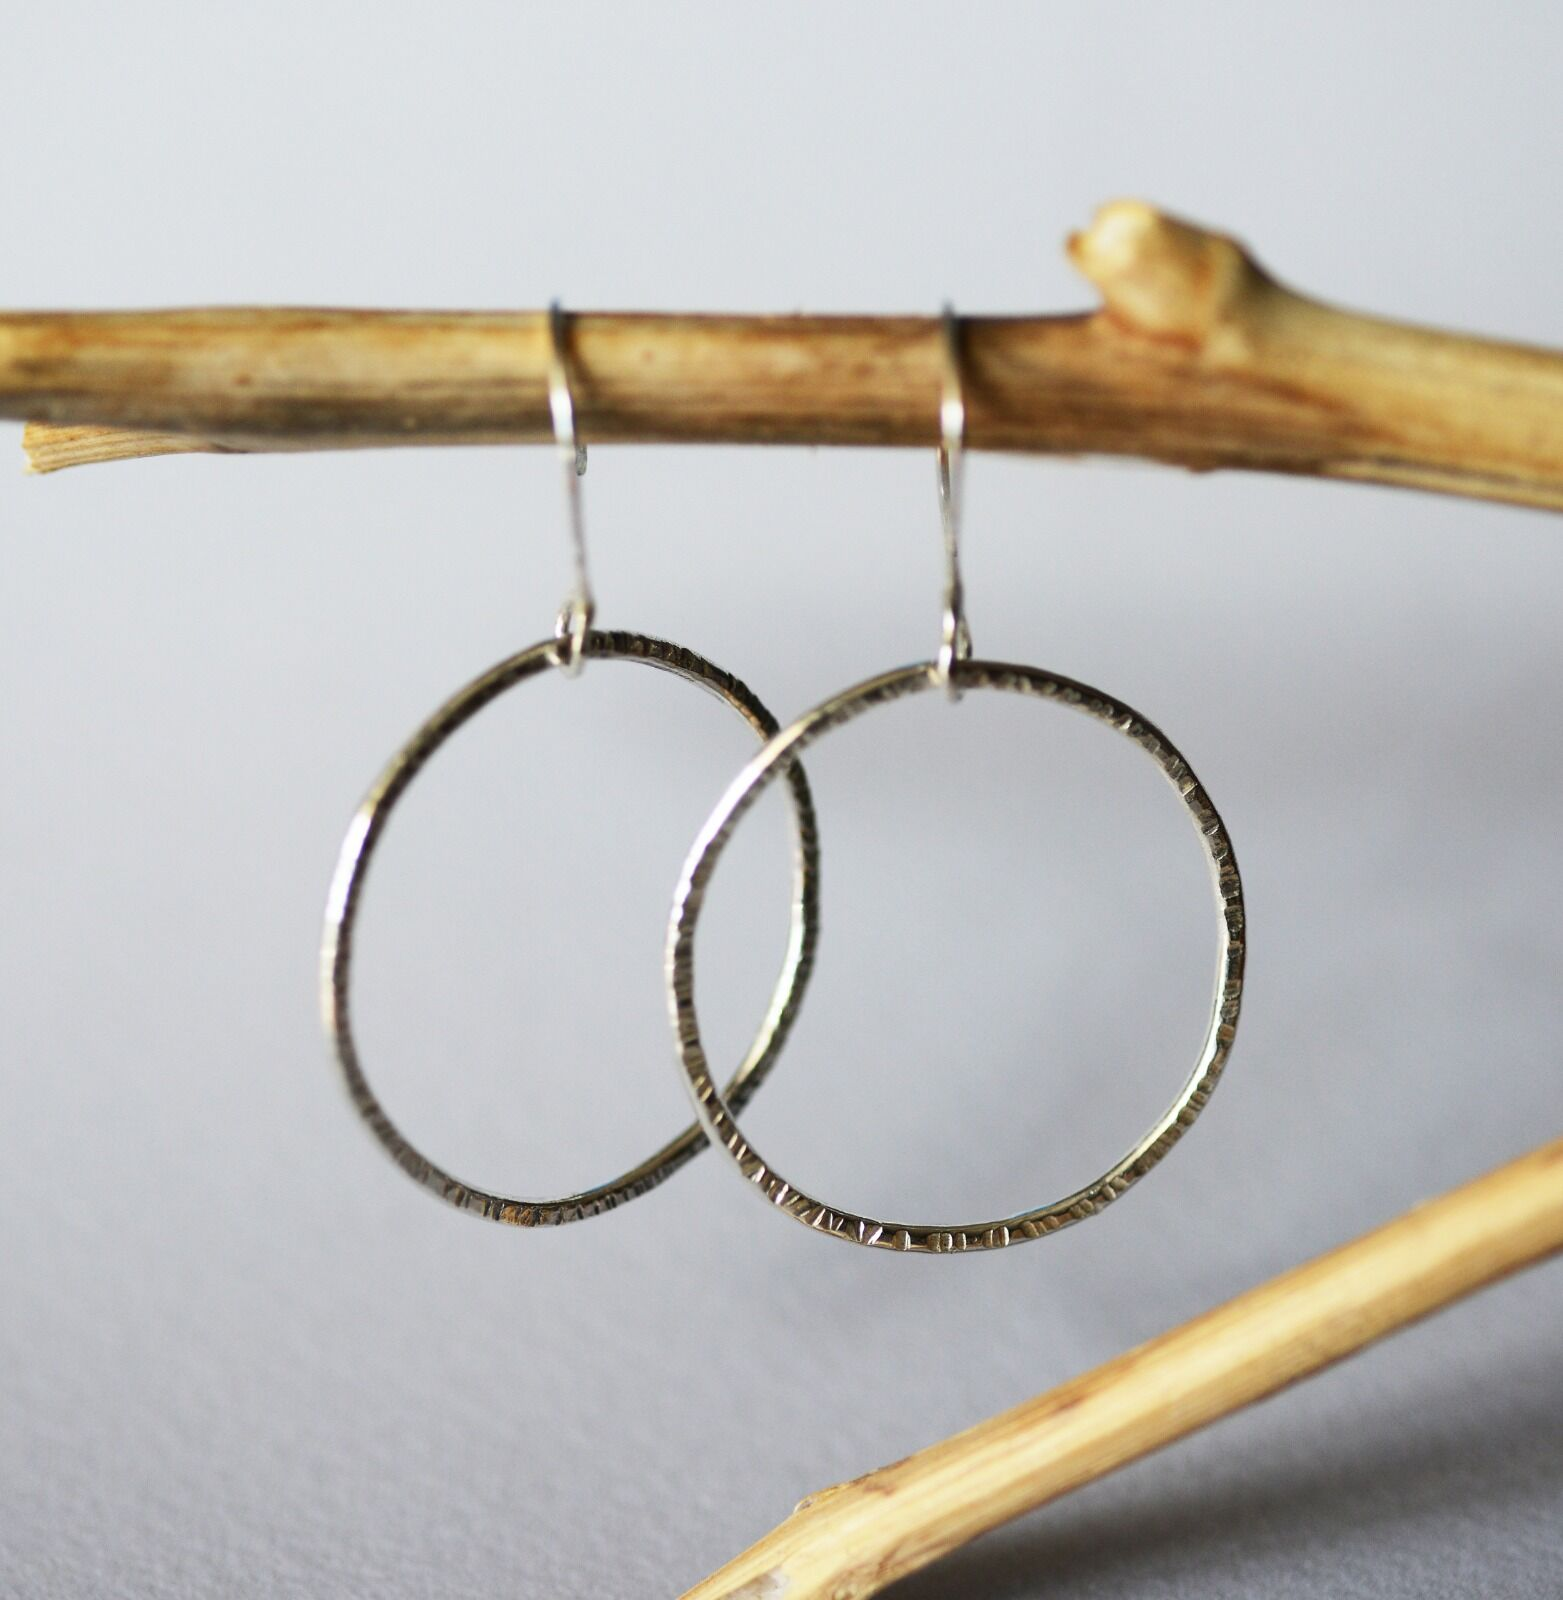 E18026 - Sterling silver hoop earring. Light hammered texture. French style ear wires